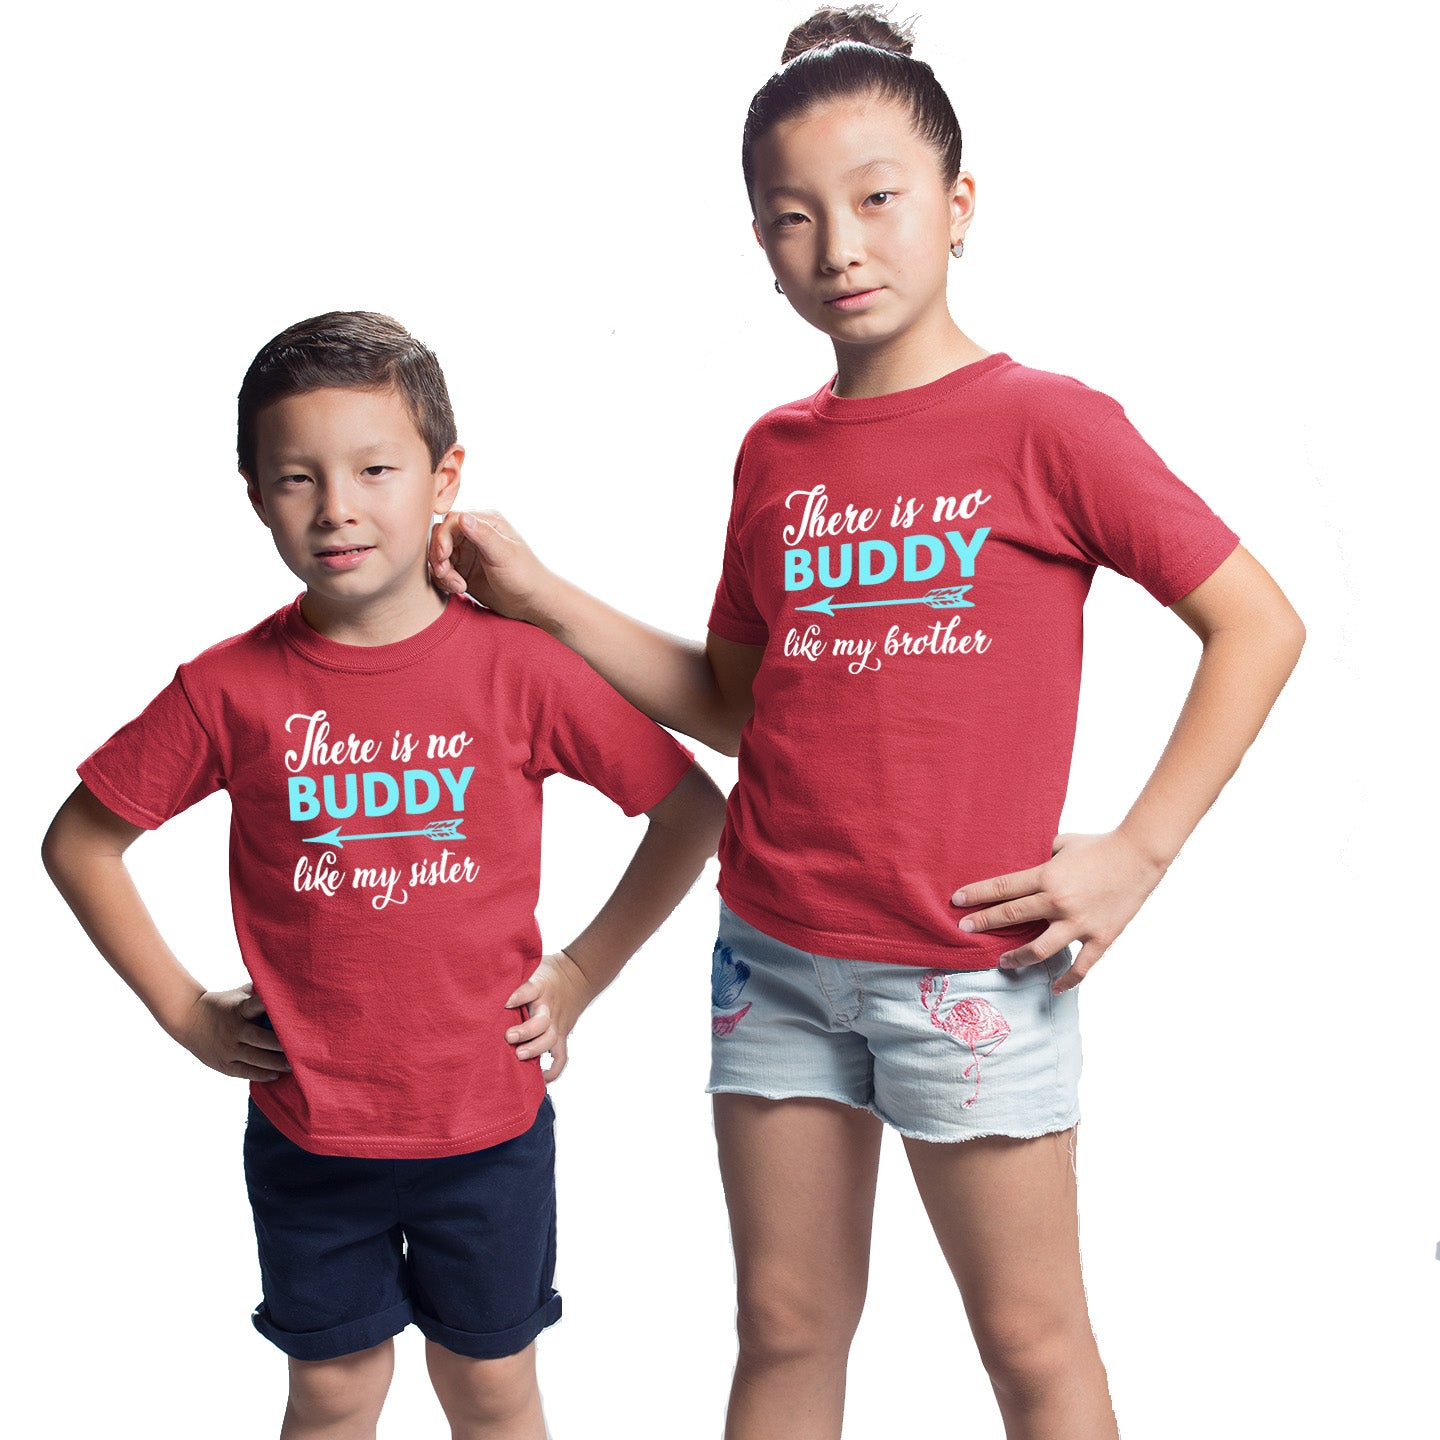 Sprinklecart There is No Buddy Like My Sister Printed T Shirts Red Cotton T Shirt Combo for Sister and Brother